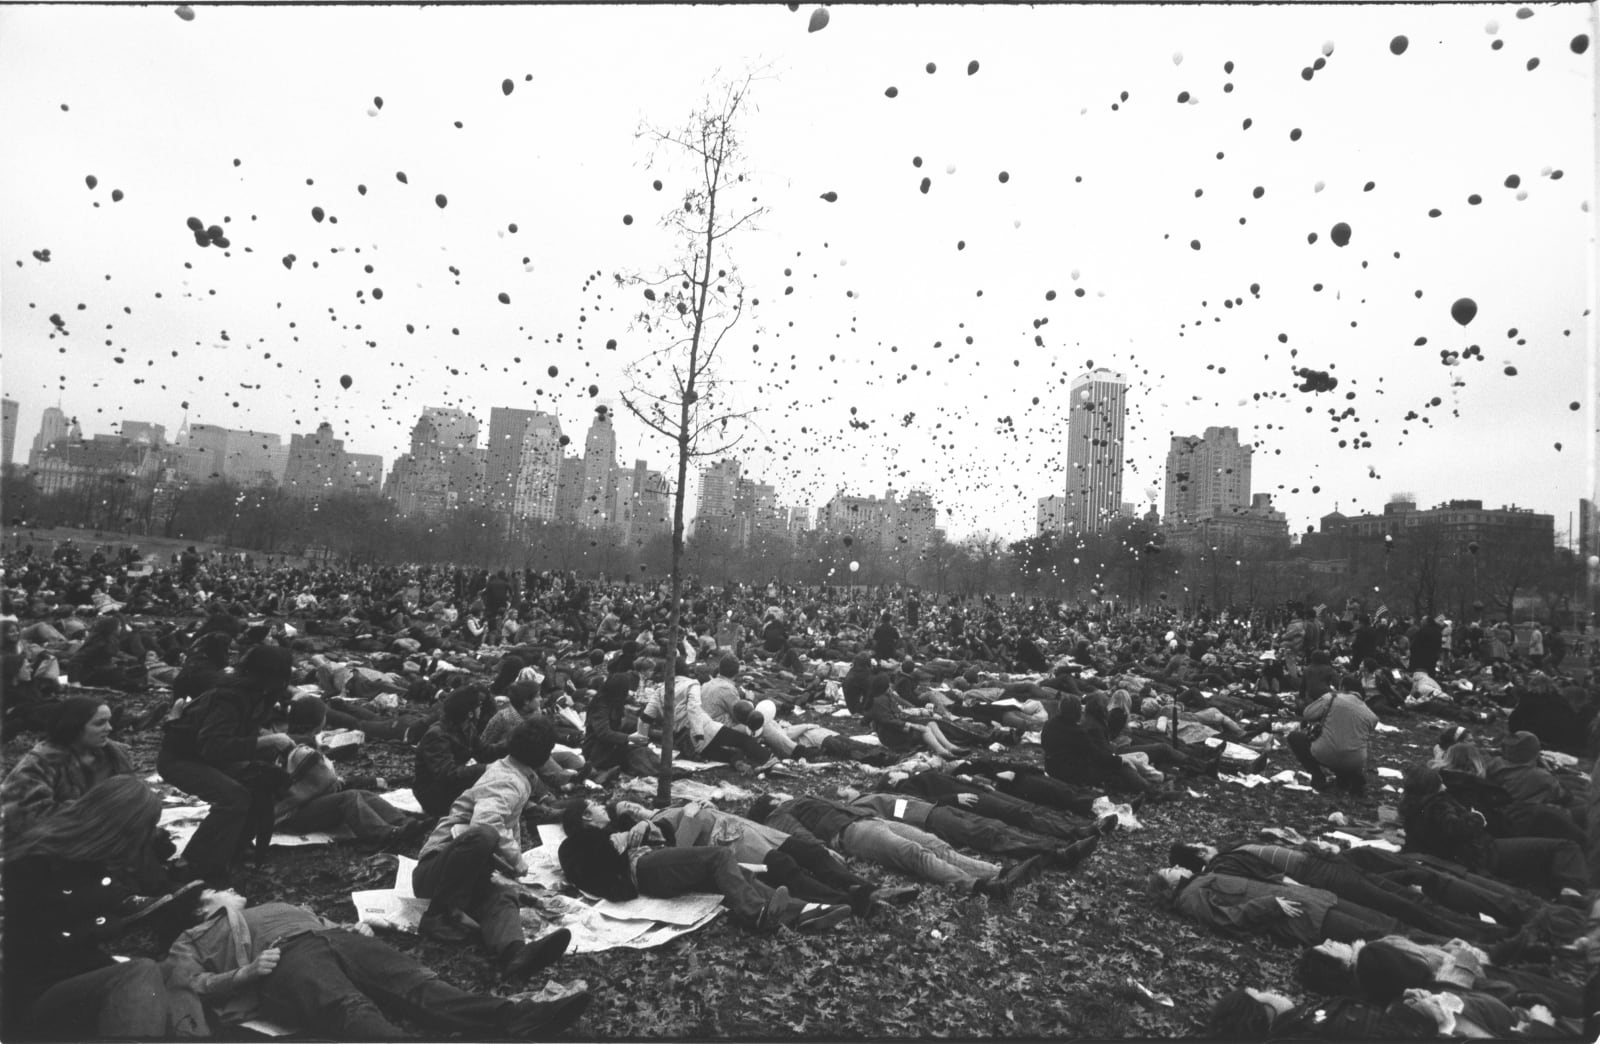 Garry Winogrand - Peace Demonstration, Central Park, New York, 1970